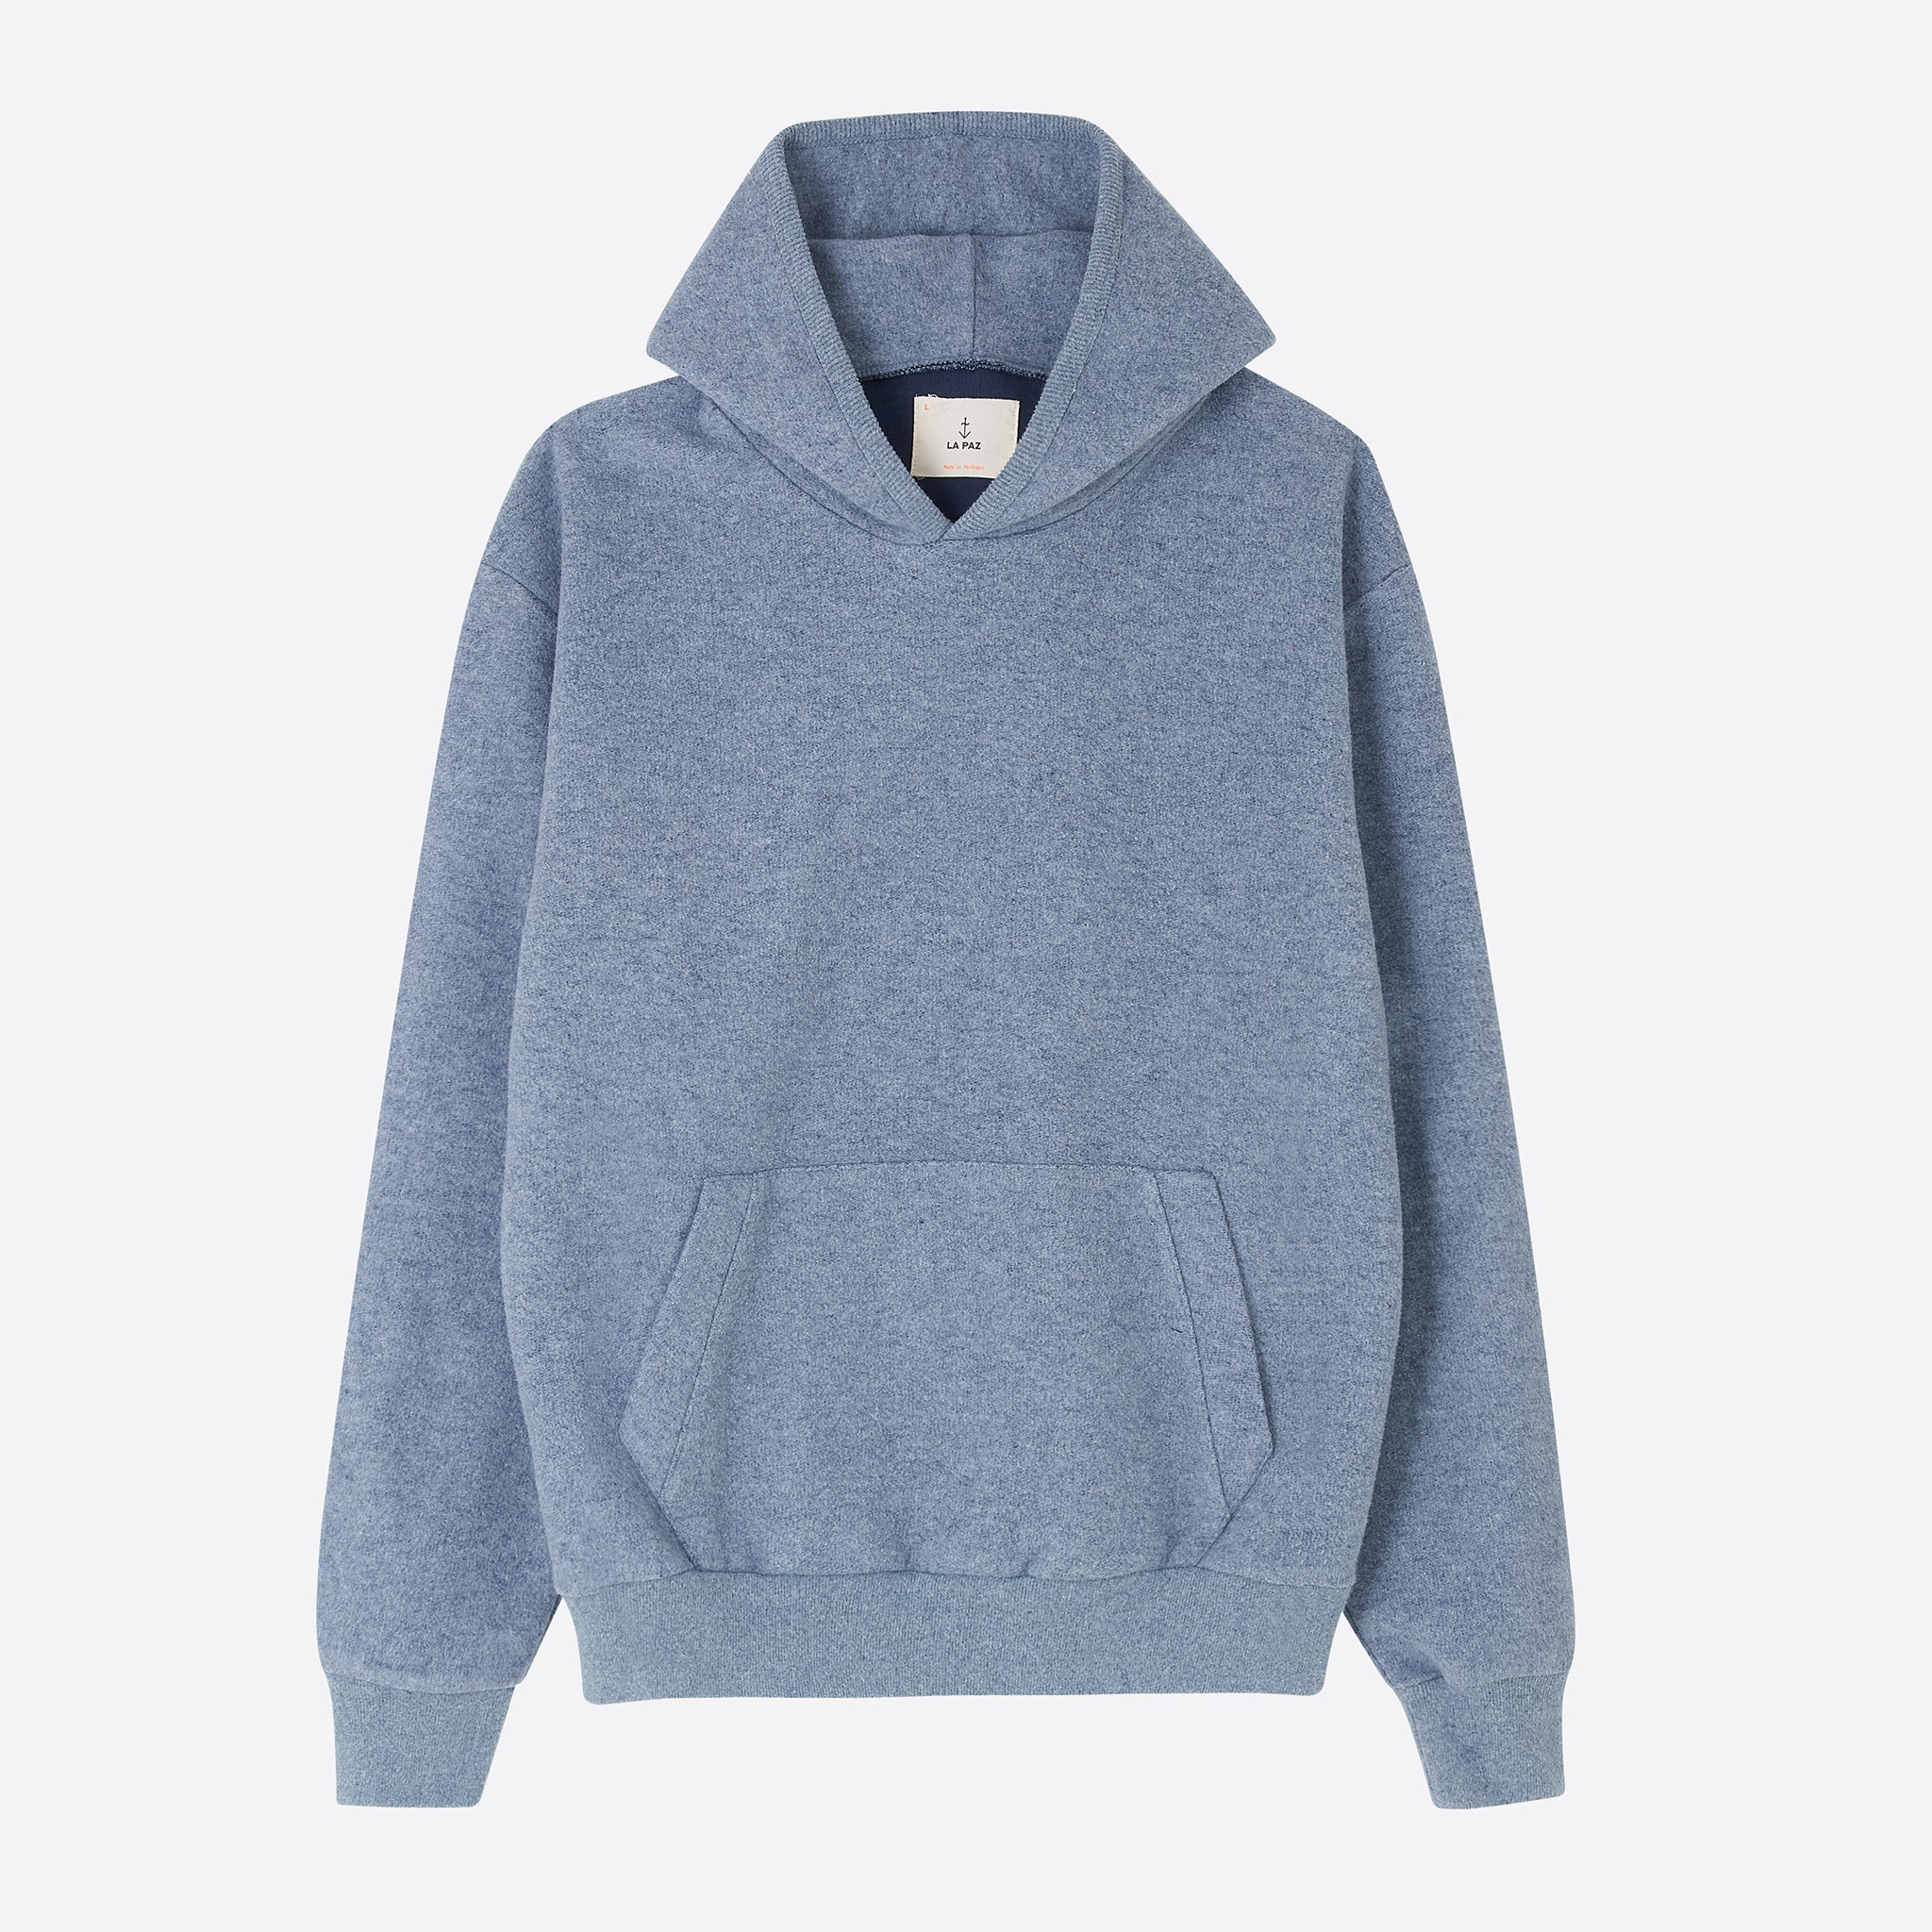 La Paz Matias Fleece in Blue